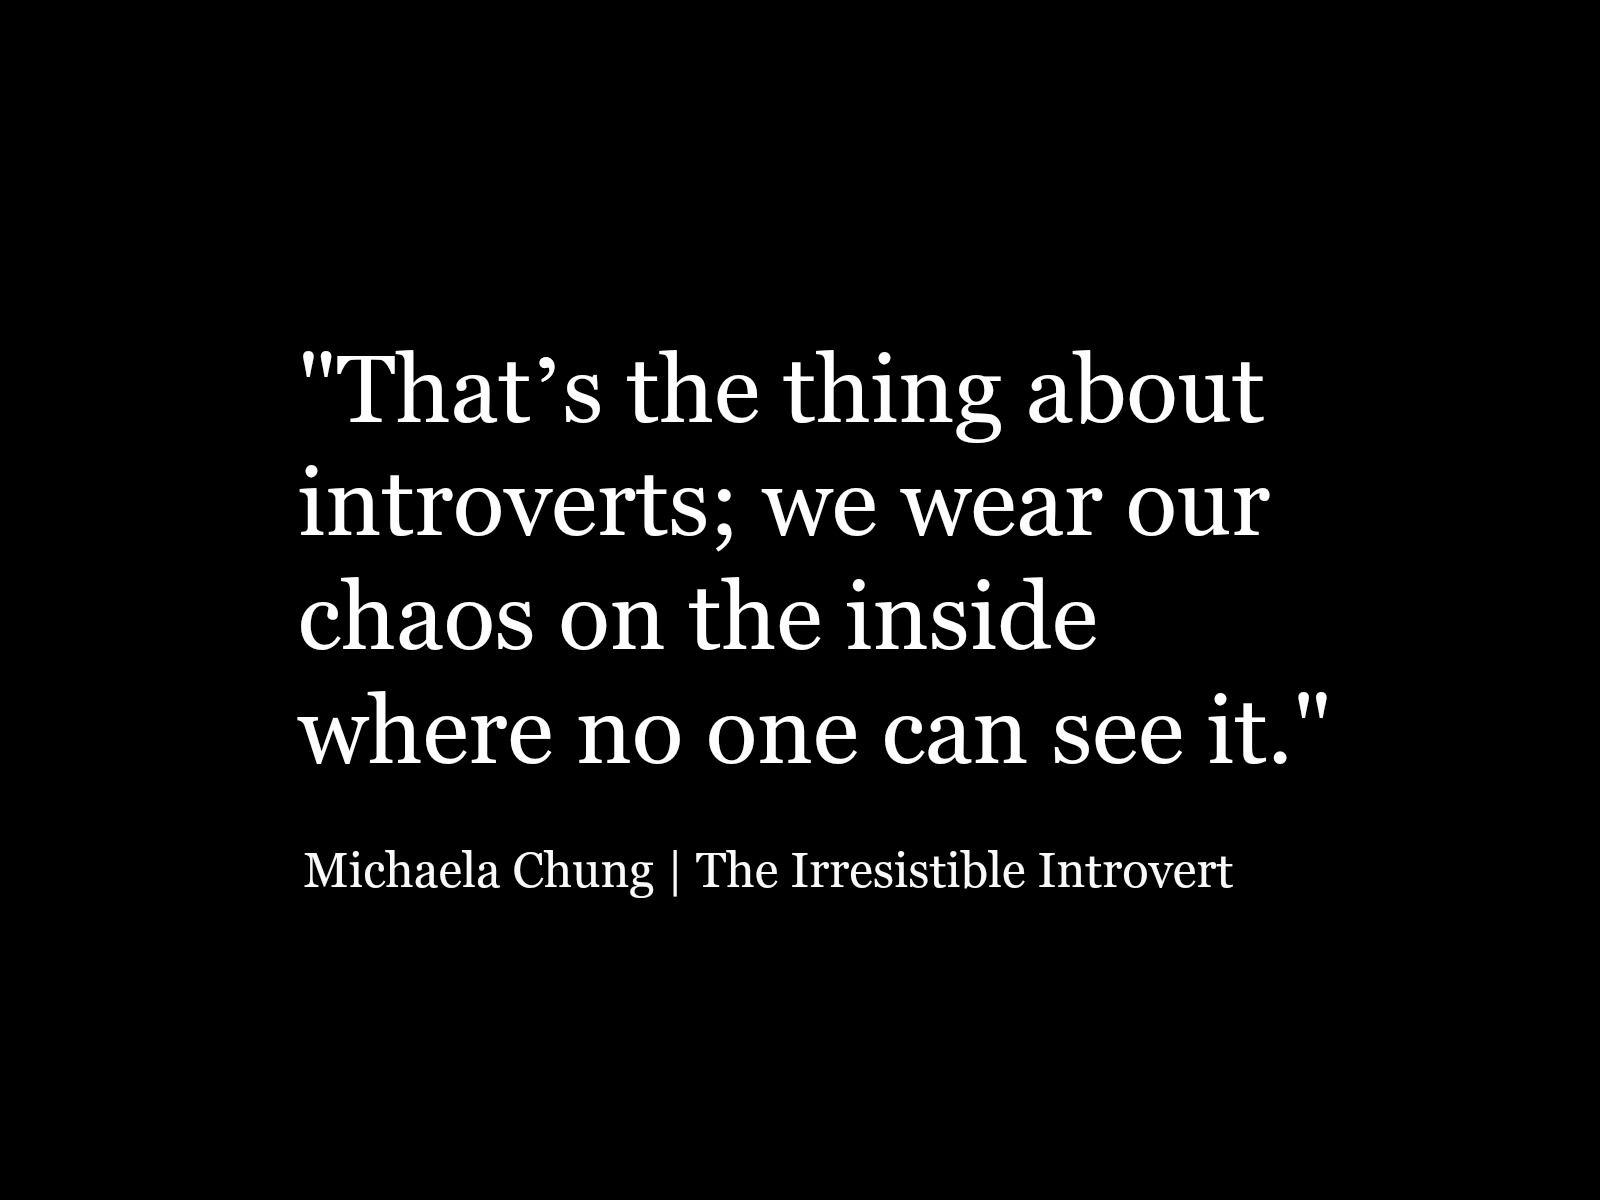 That s the thing about introverts we wear our chaos on the inside where no one